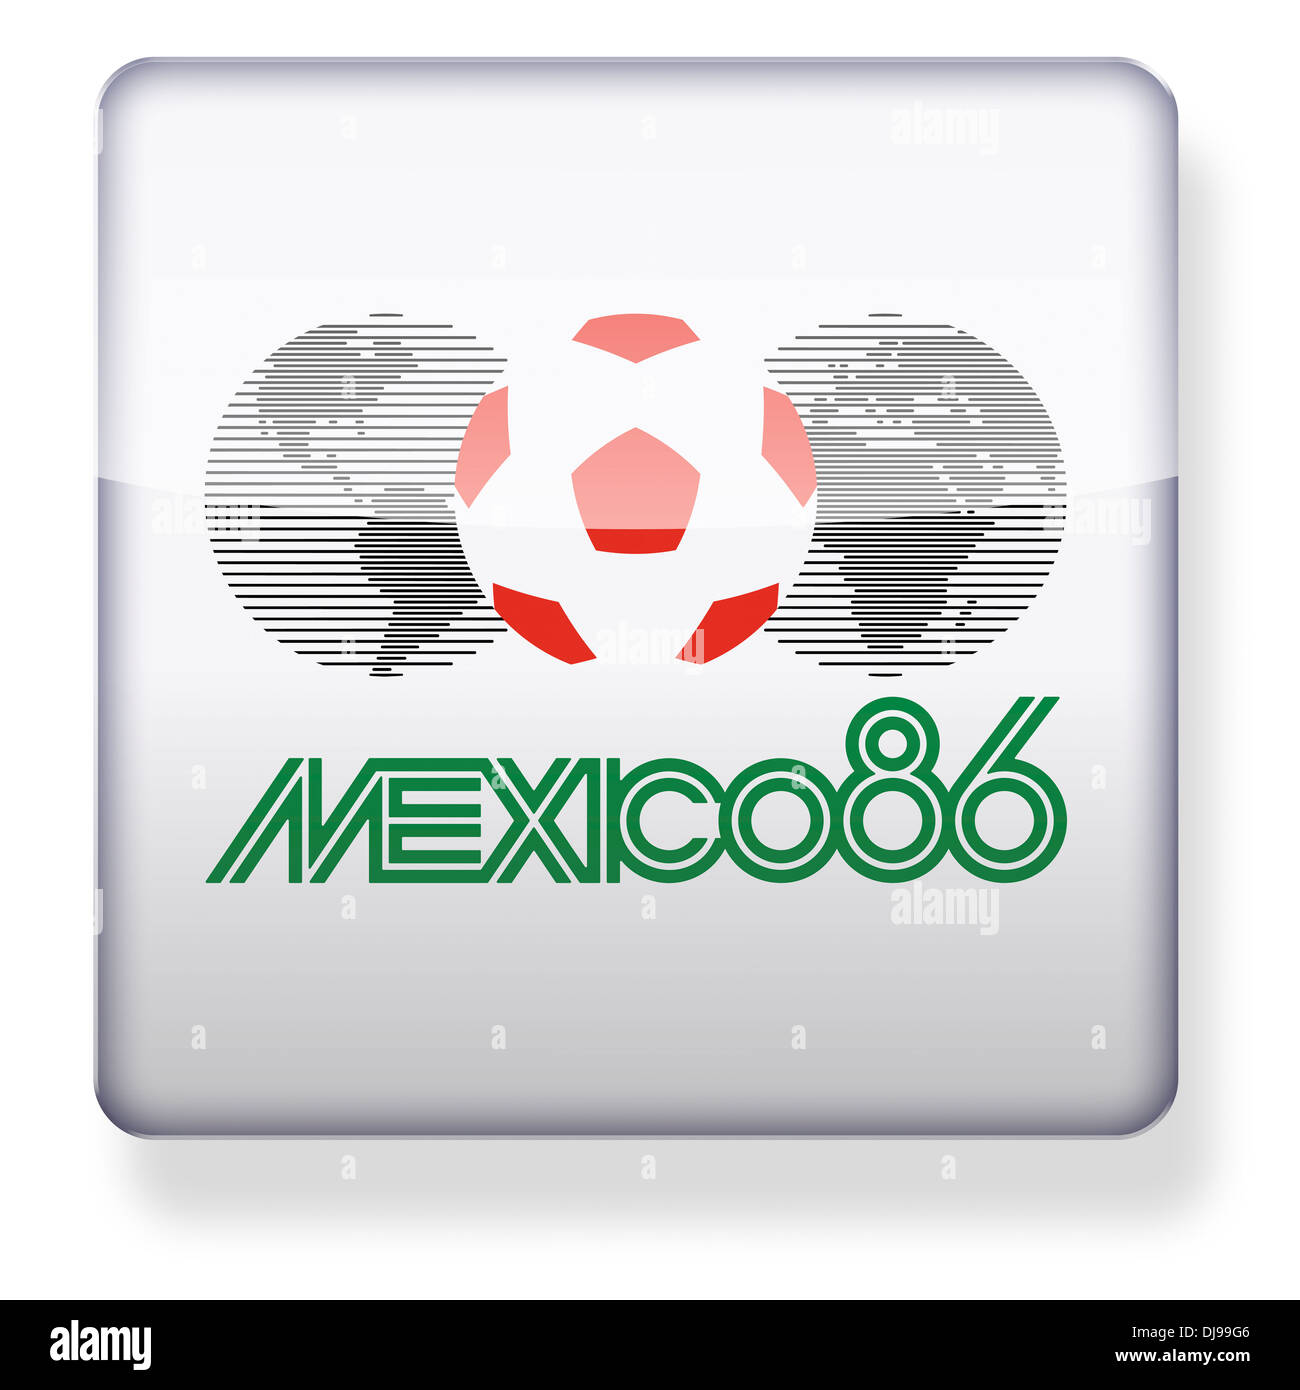 Mexico 1986 World Cup logo as an app icon. Clipping path included. - Stock Image